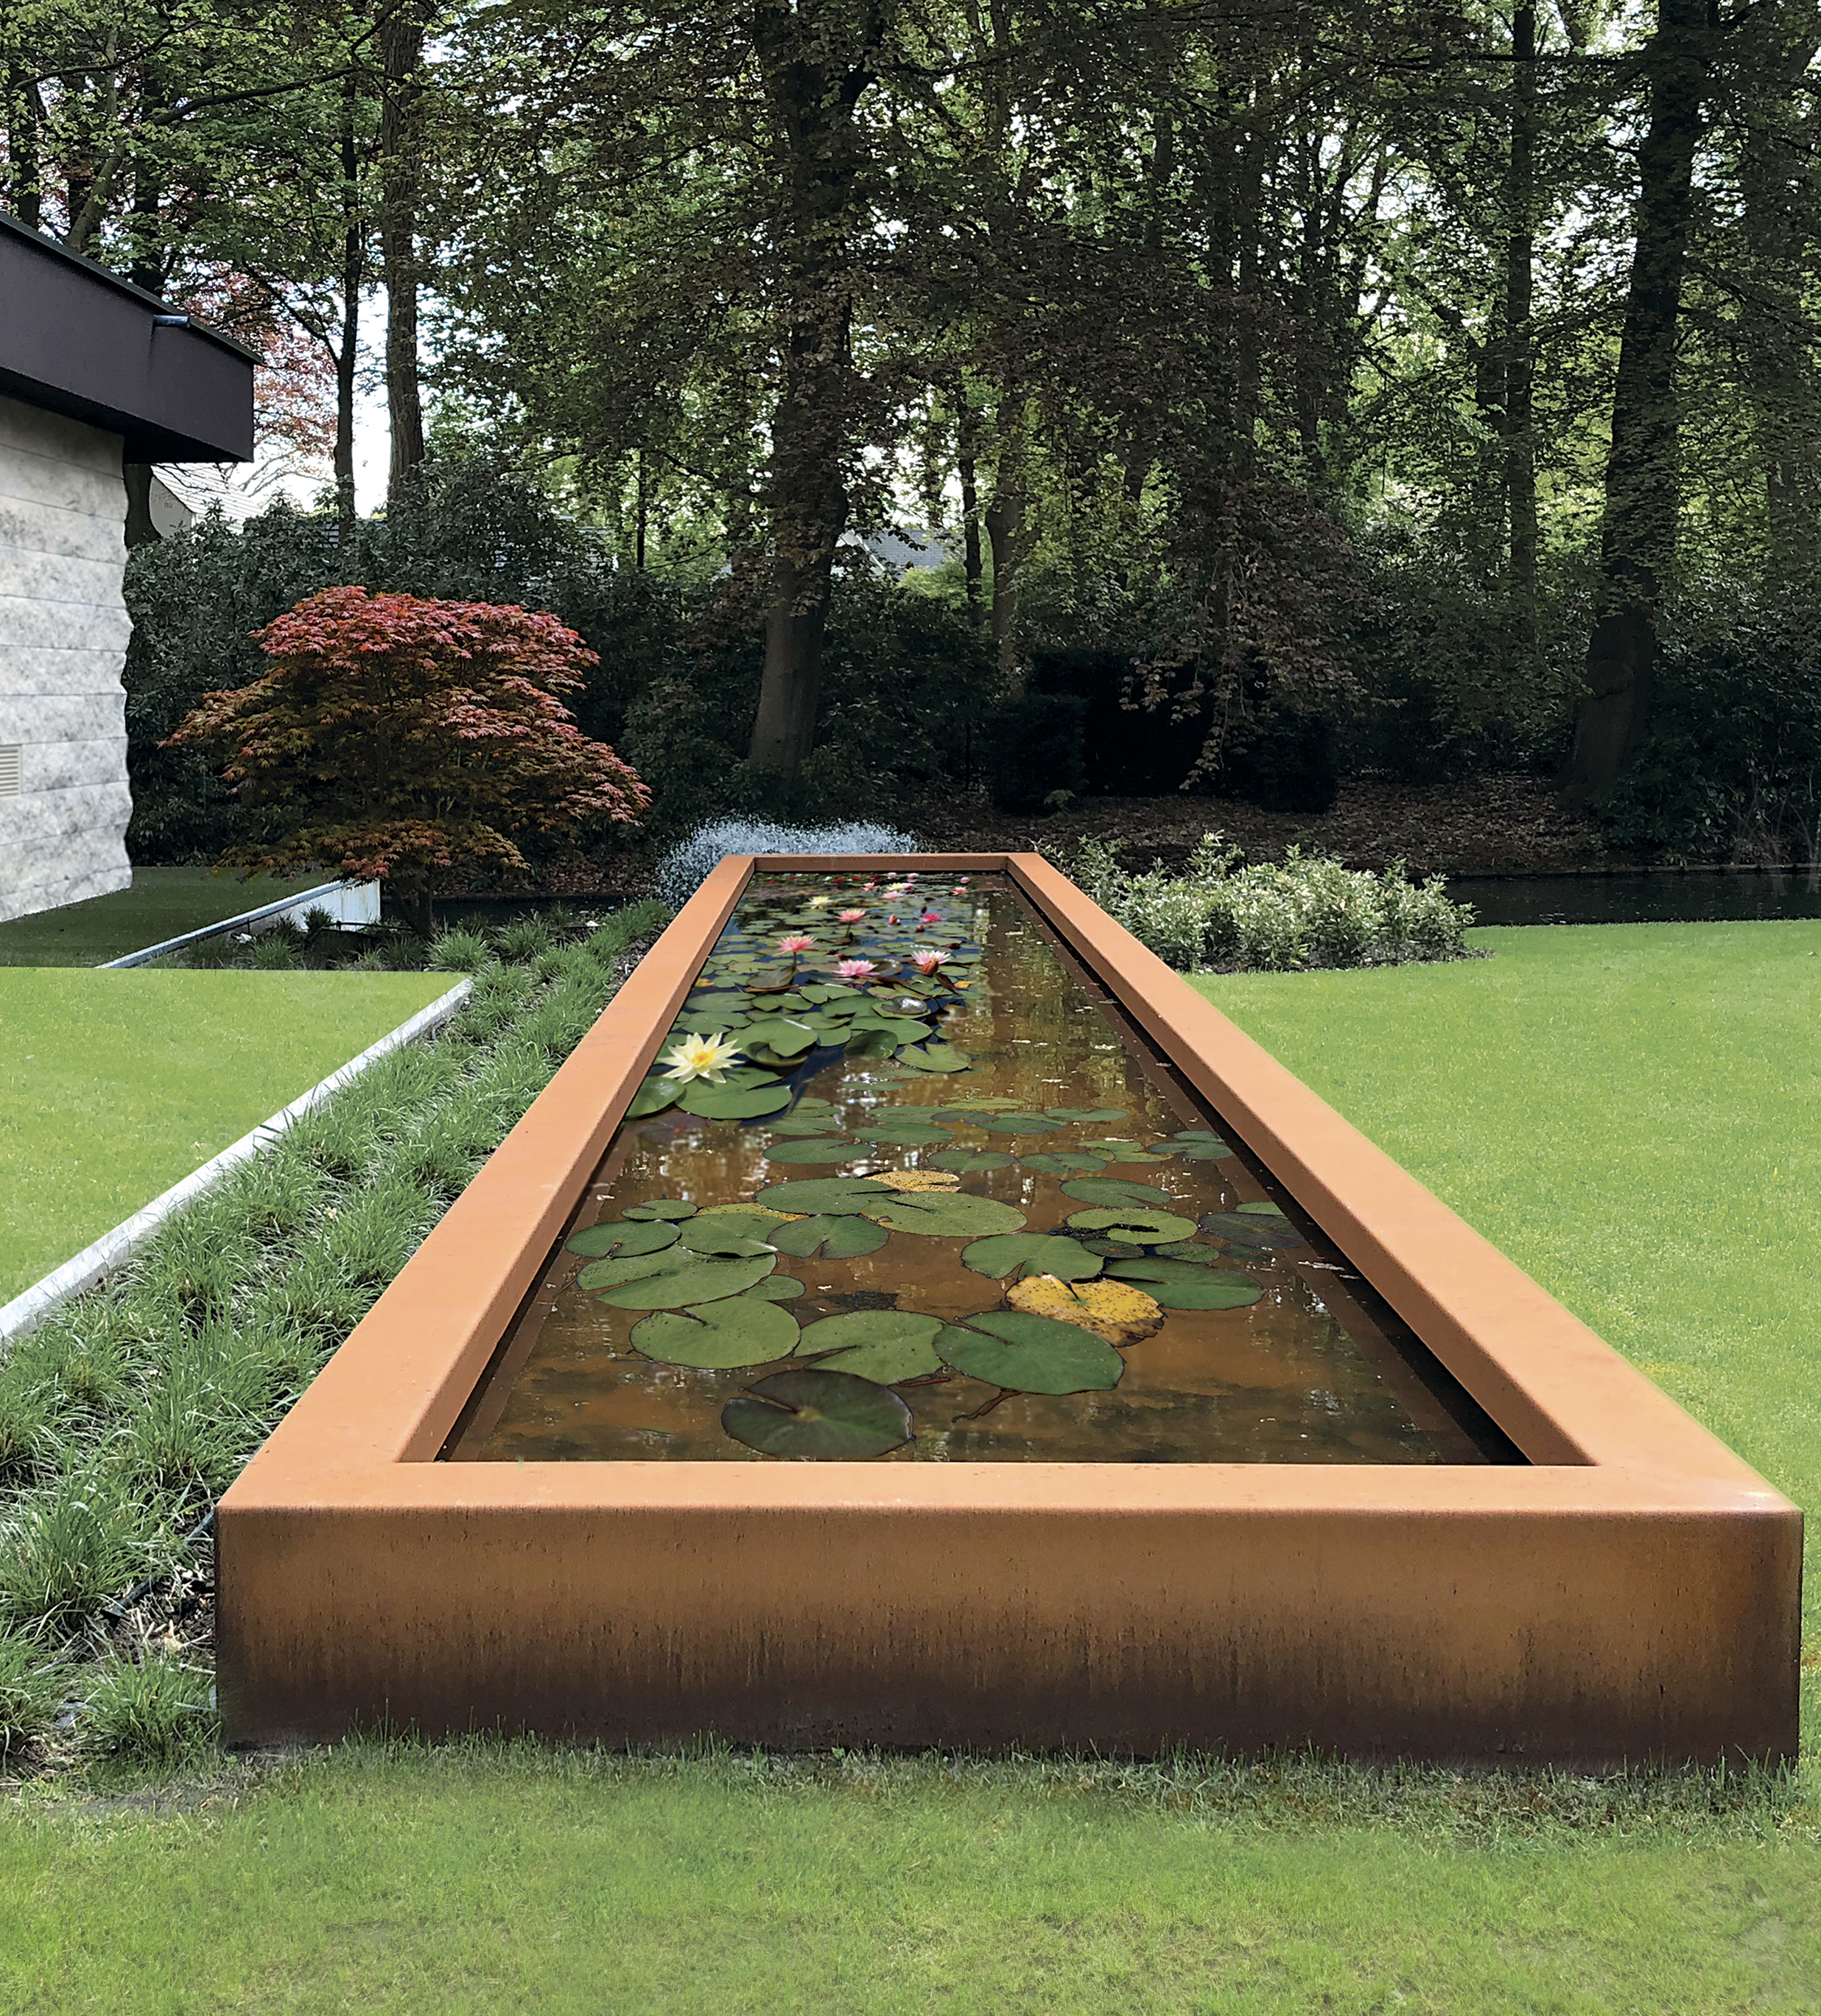 walfilii-realisaties-tuin-waterelement-waterbak-fontijn-design-2